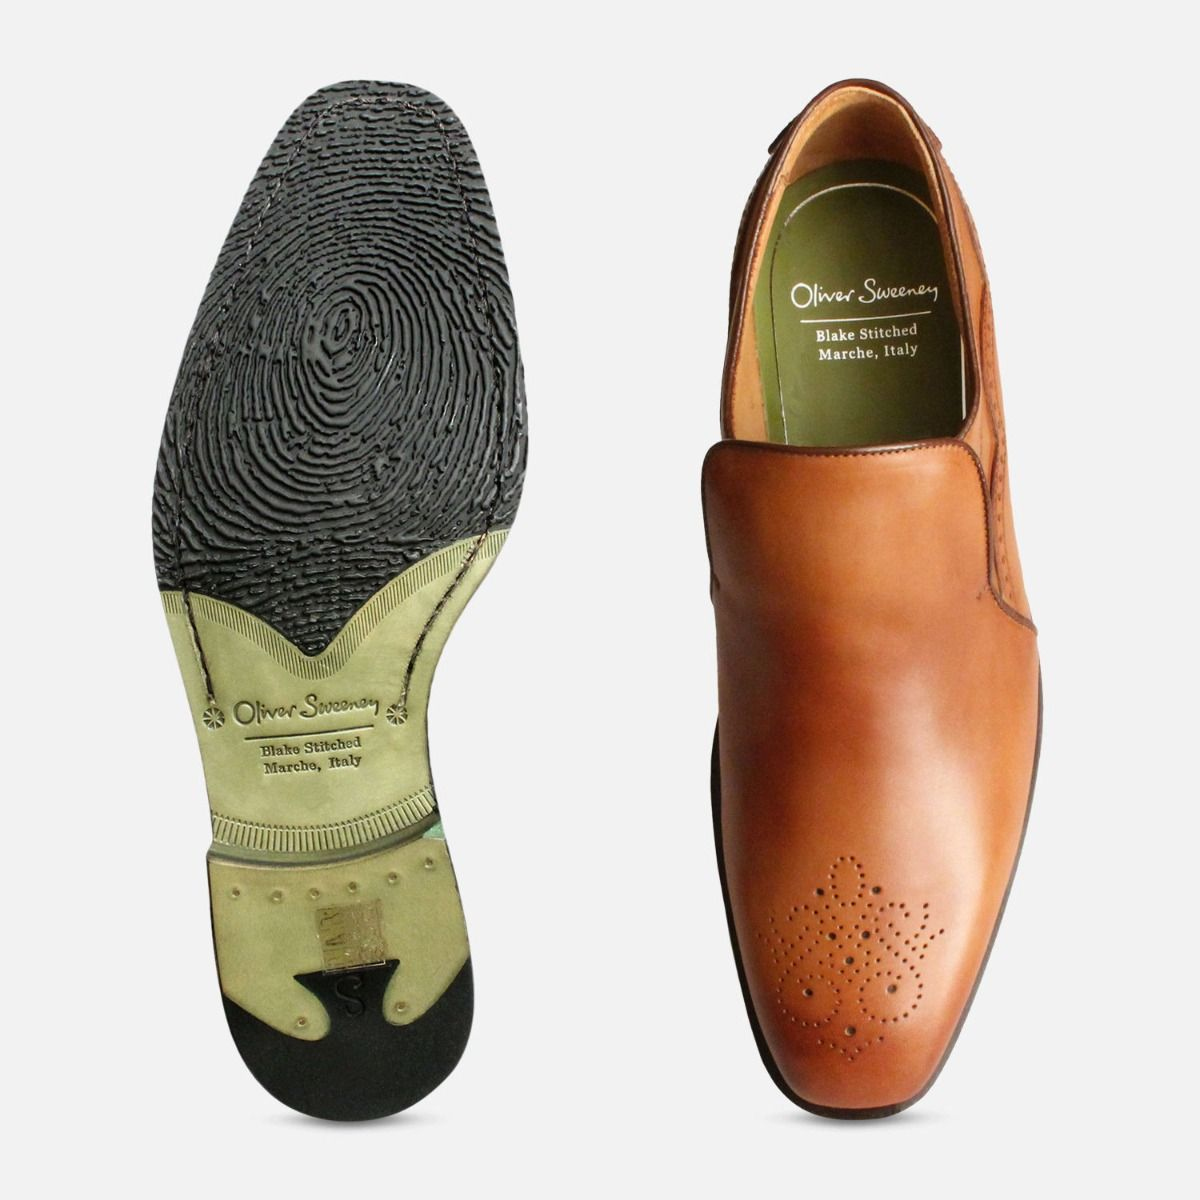 Tan Leather Italian Loafers for Men by